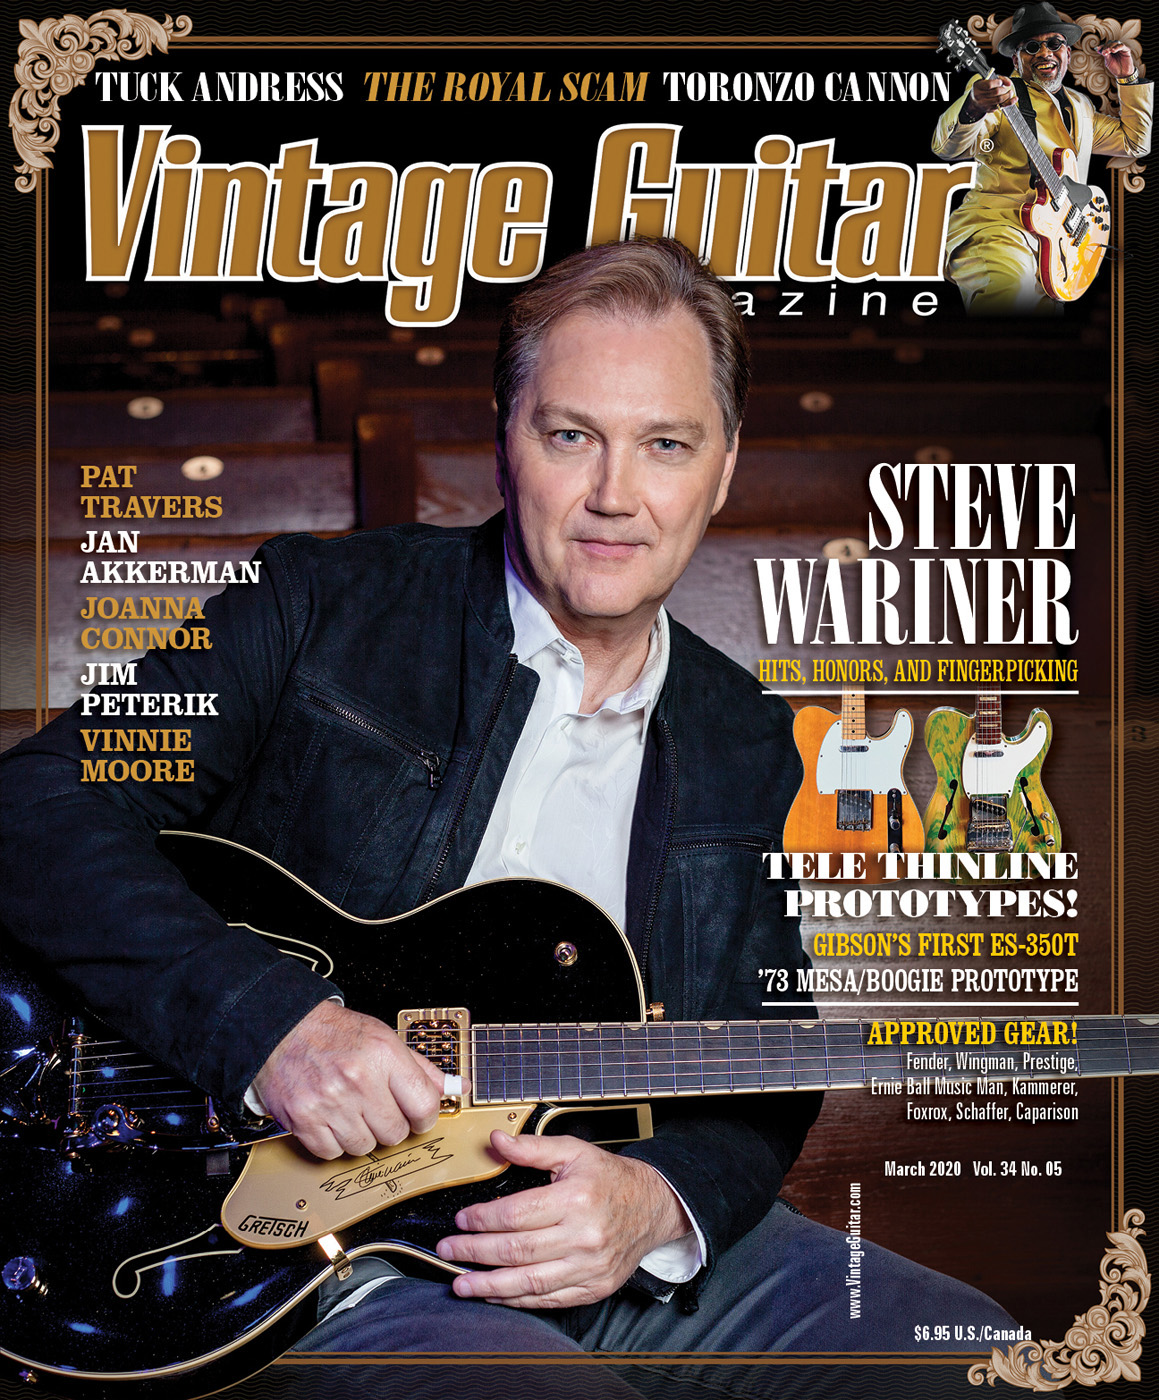 Vintage Guitar magazine, March 2020 Issue, Steve Wariner, Fender Tele Thinline Prototypes, Toronzo Cannon